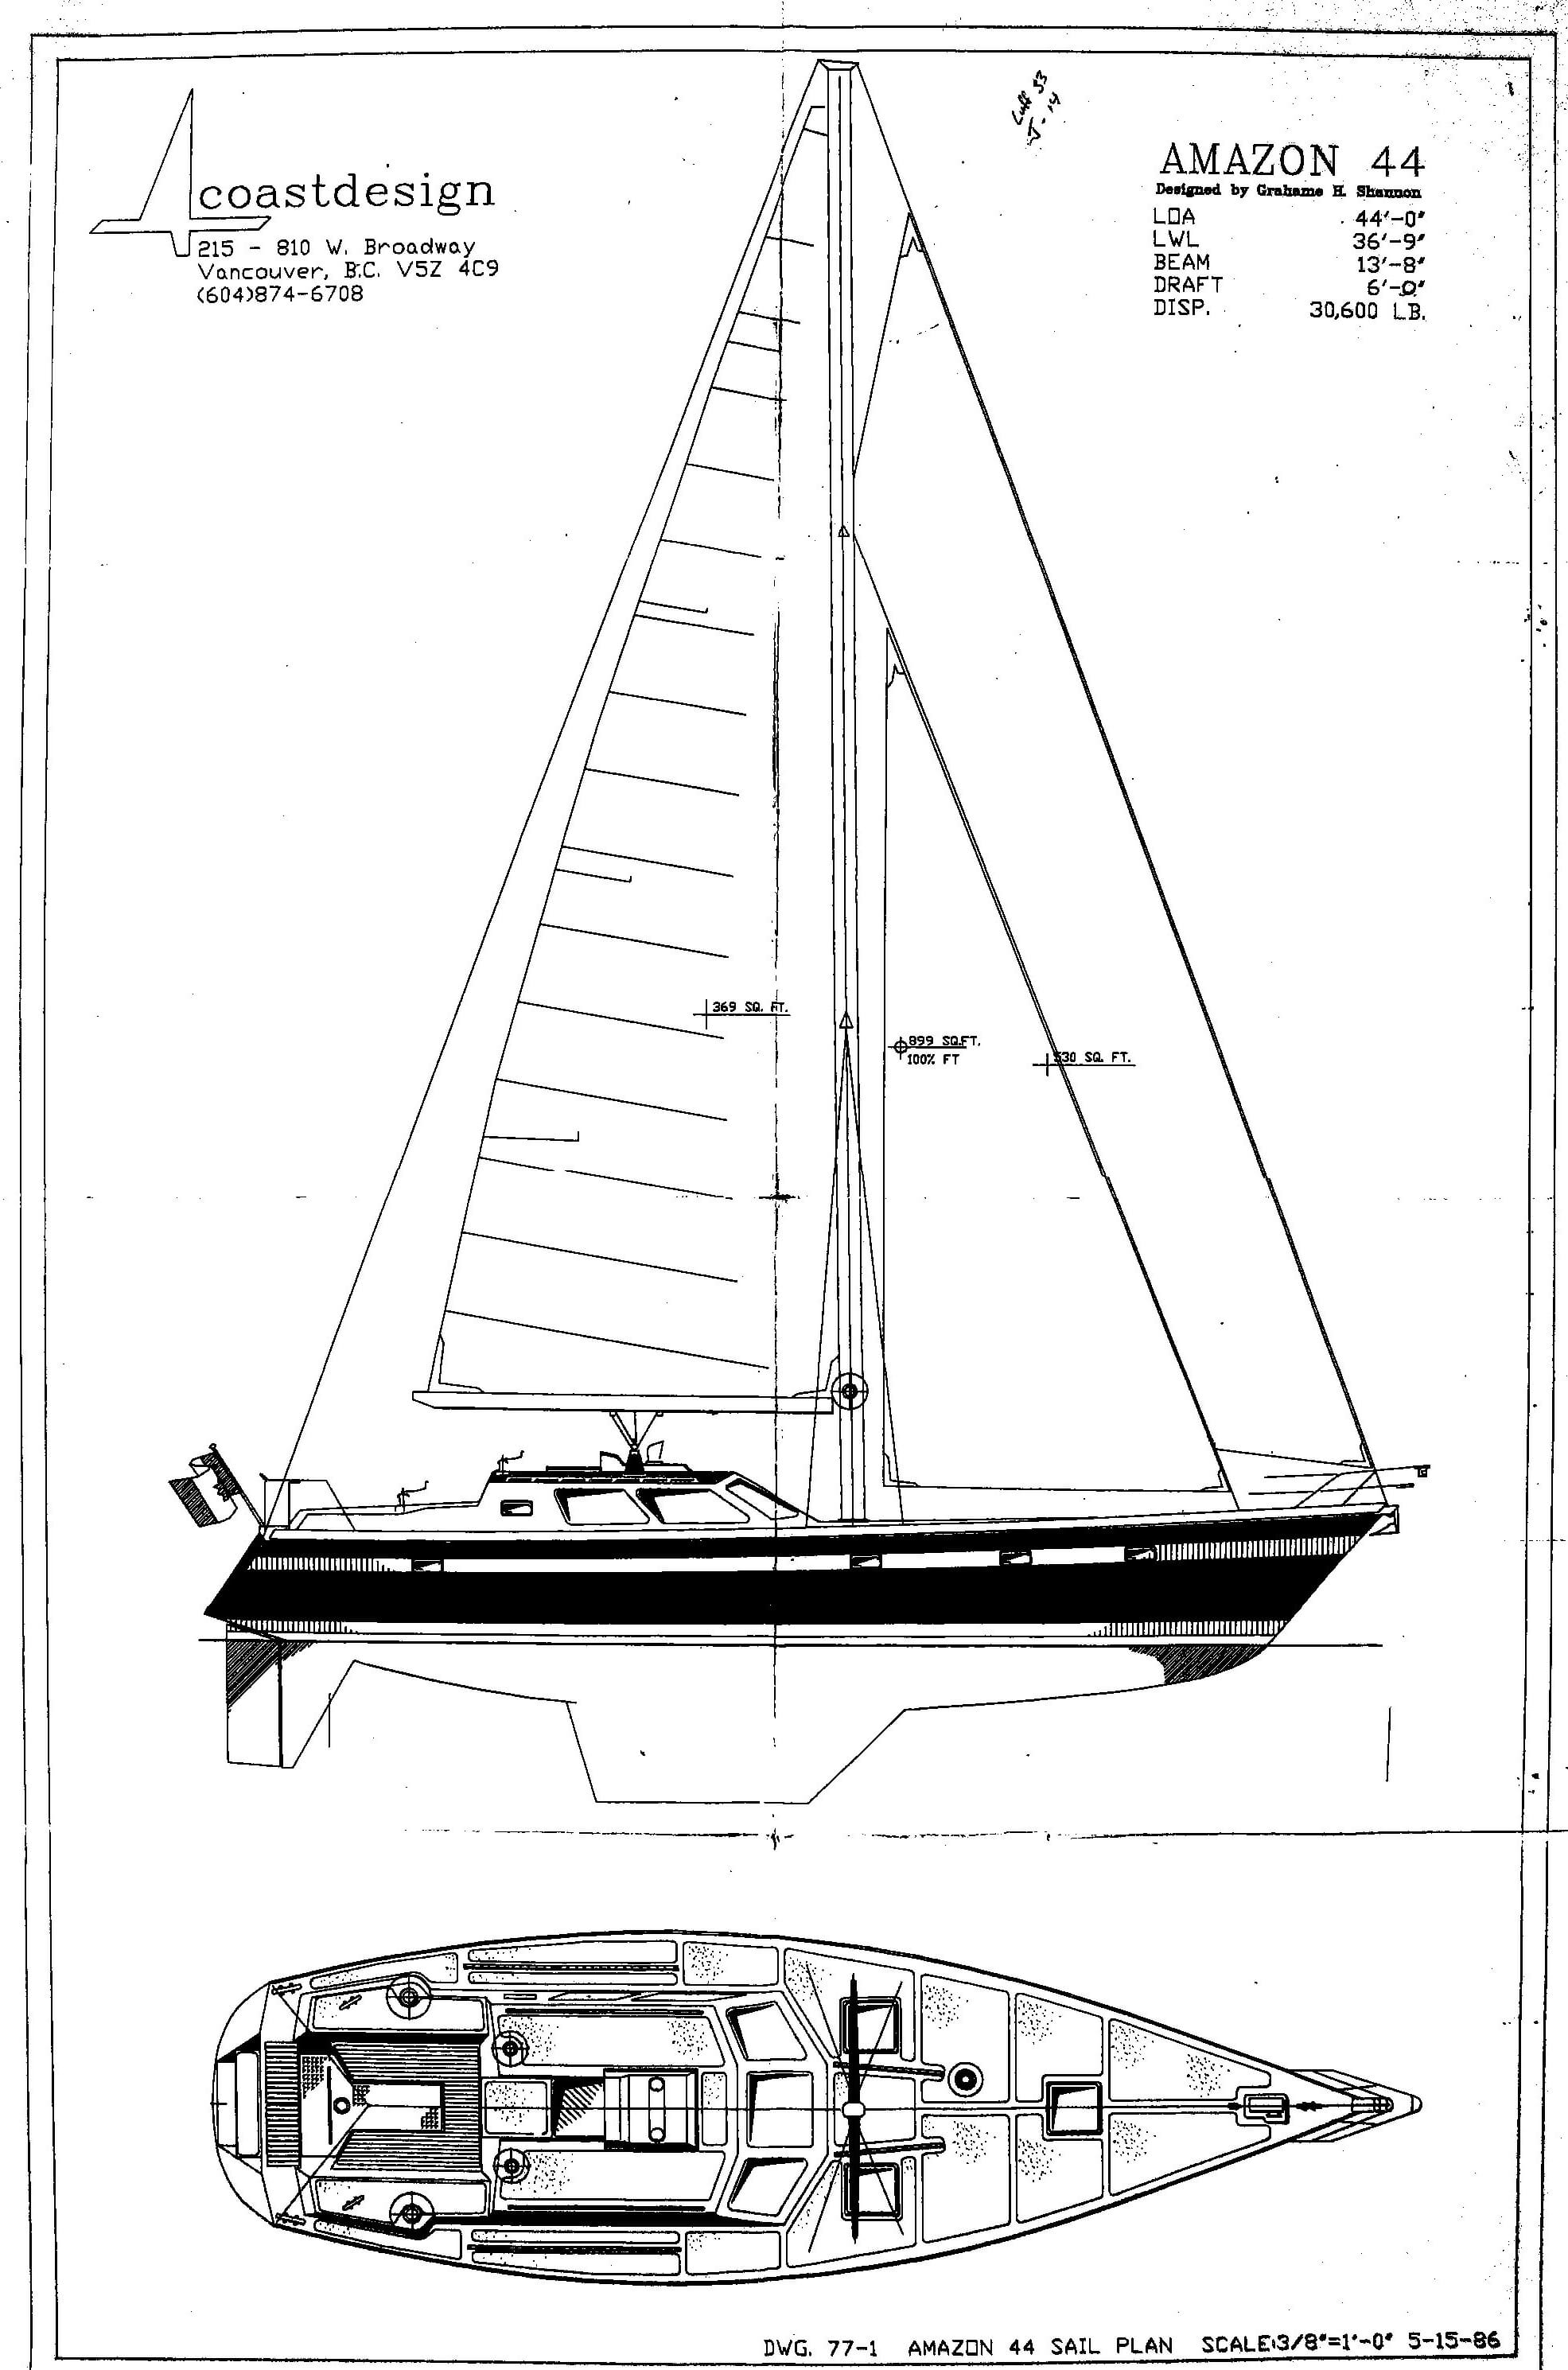 hight resolution of this machine is made for offshore voyaging and supports single handed sailing with all running rigging in the cockpit including the control line for the